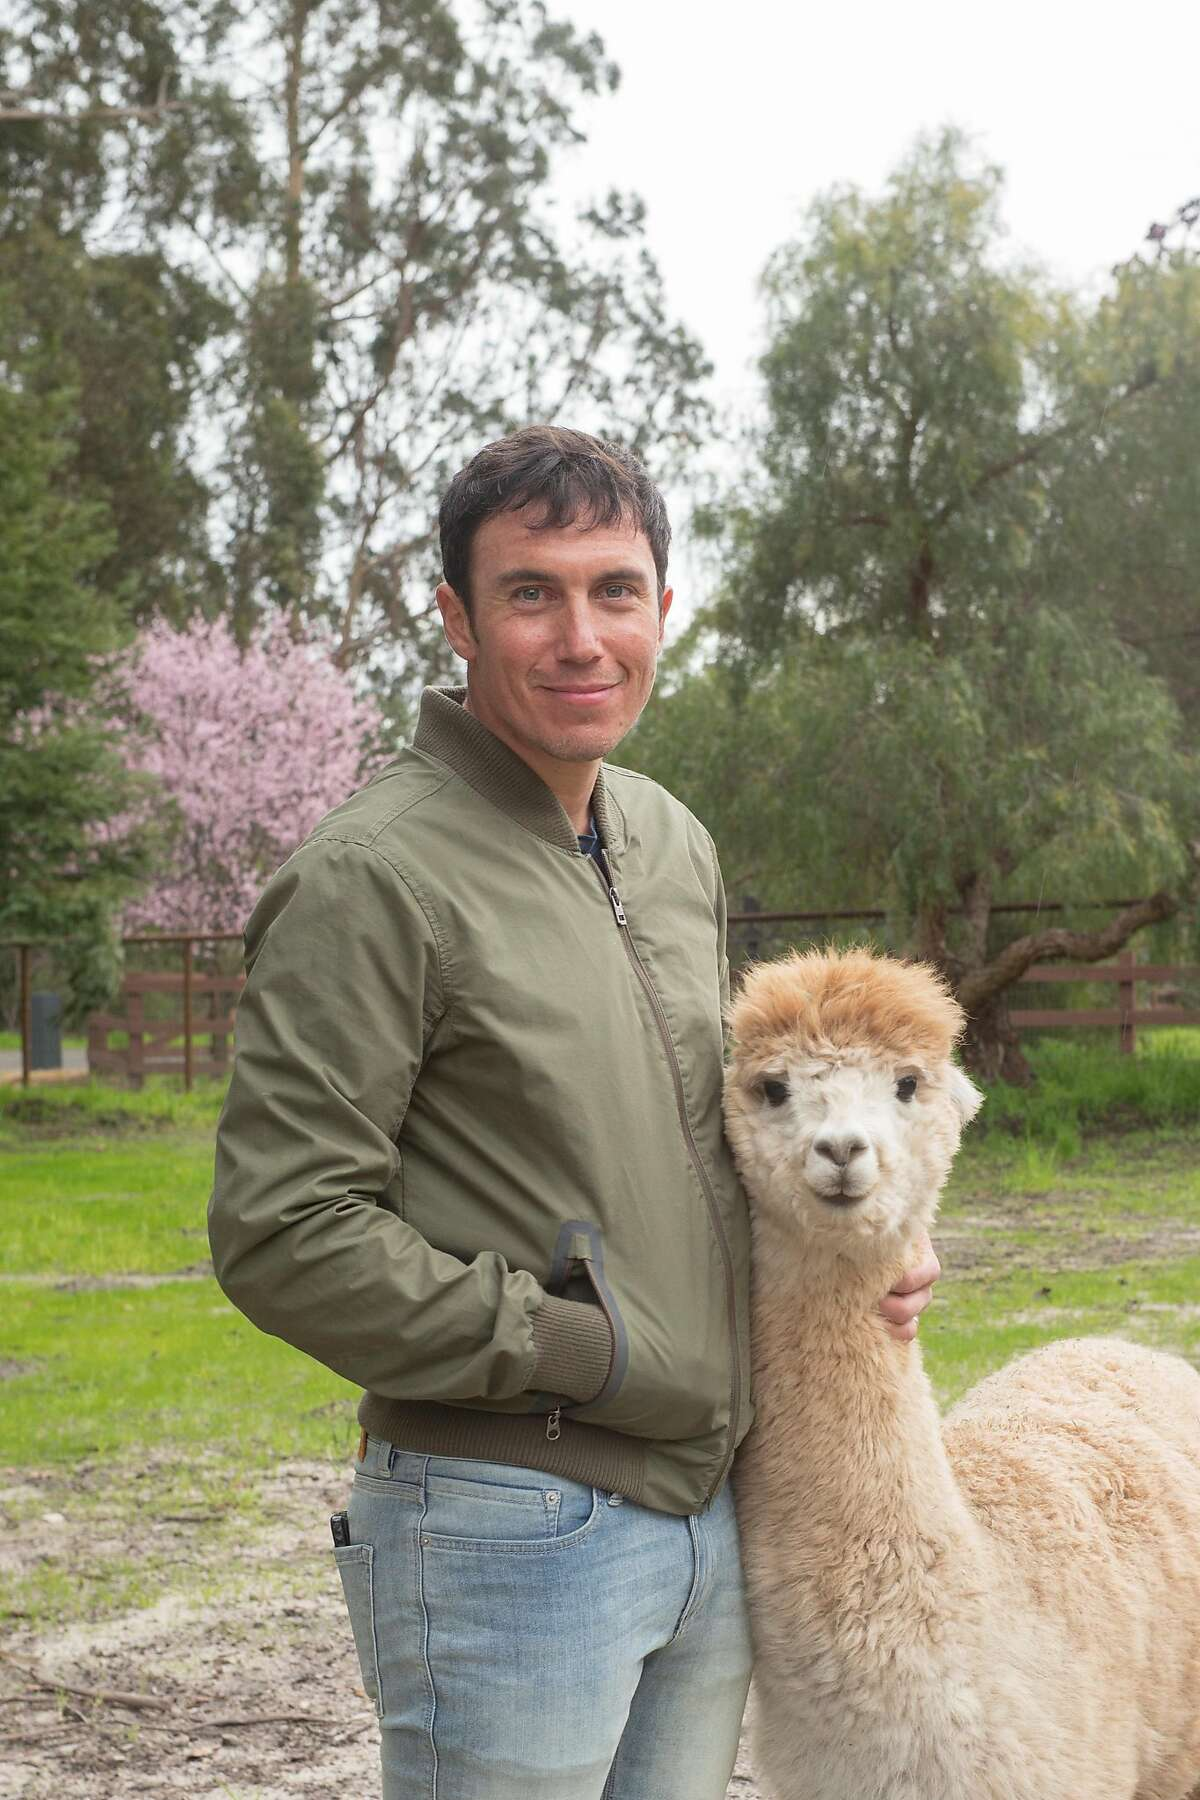 Photographer Chris Burkard with one of his two pet alpacas at his home in Arroyo Grande, Calif.